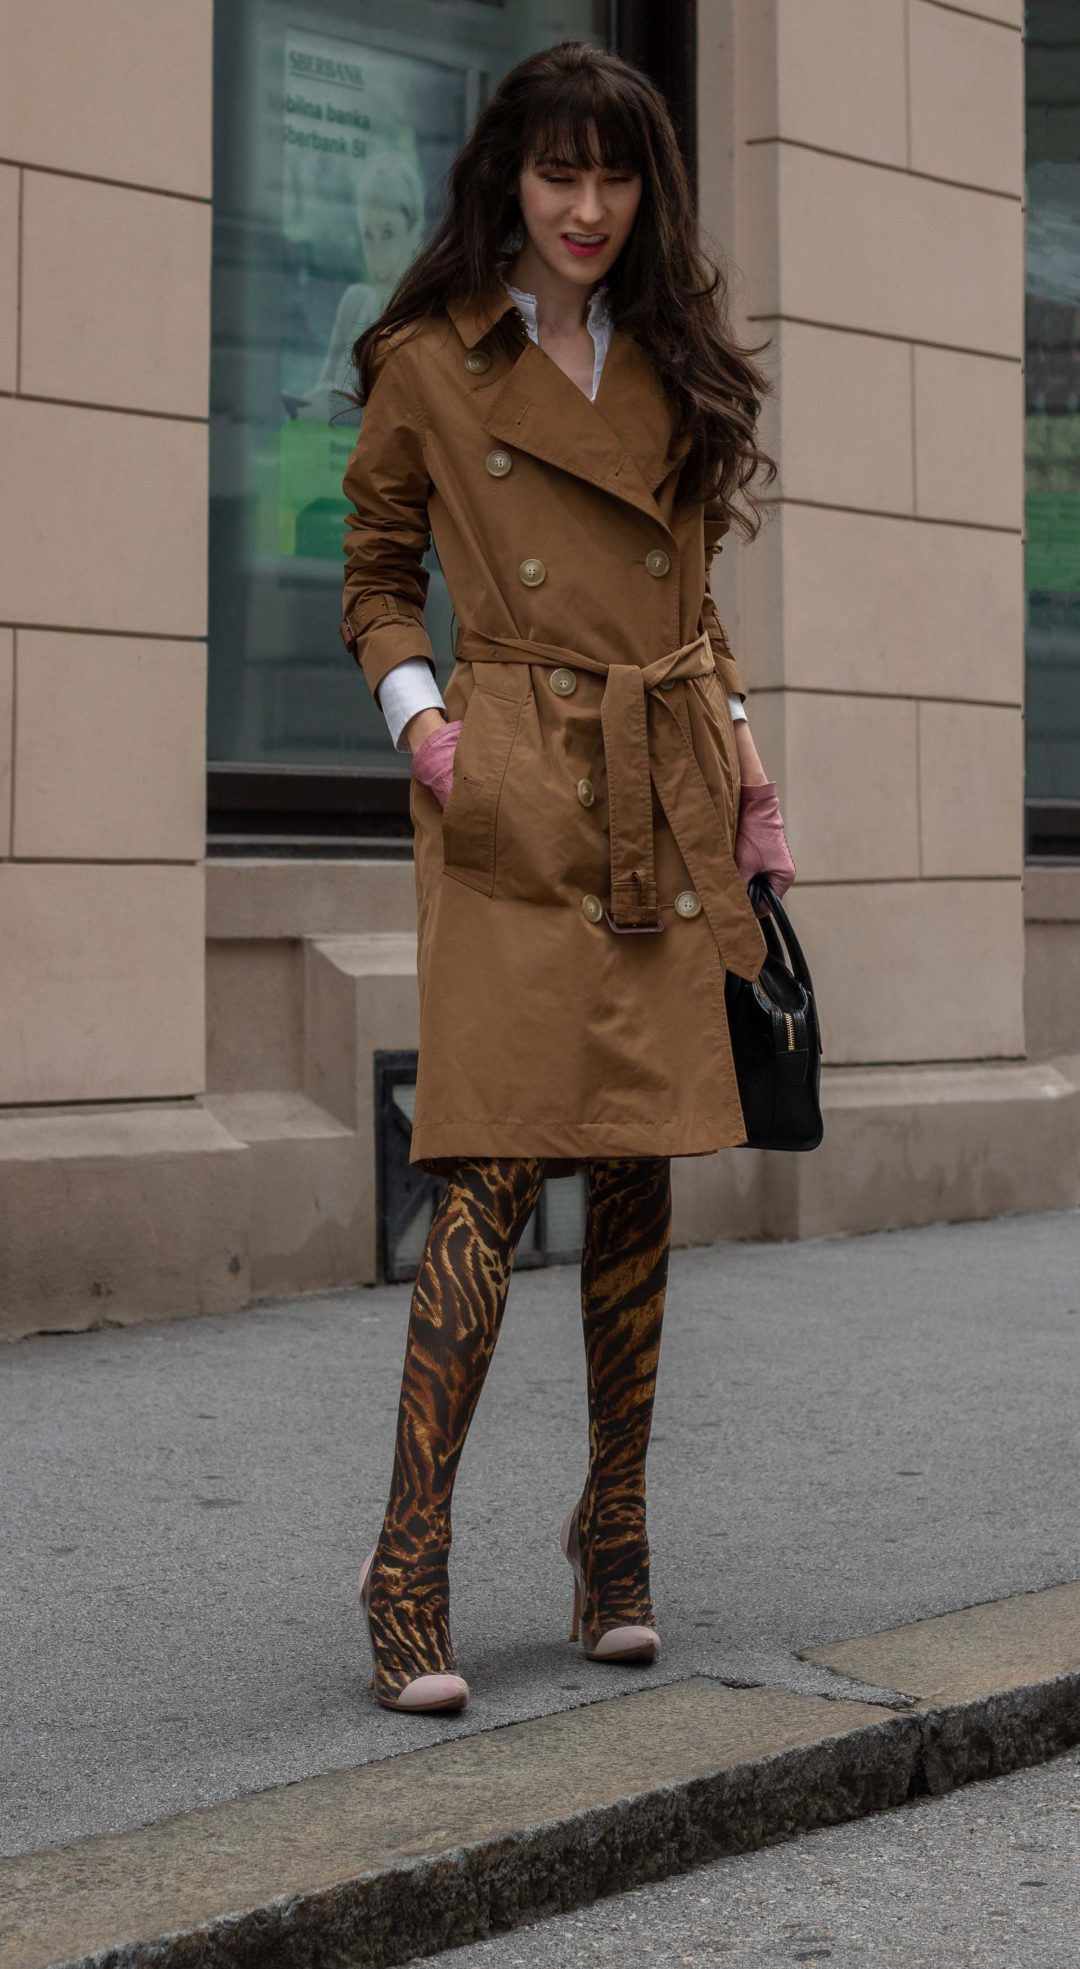 Fashion blogger Veronika Lipar of Brunette from Wall Street wearing camel Burberry trench coat Ganni tiger print tights Gianvito Rossi plexi pumps pink gloves black top handle bag everyday